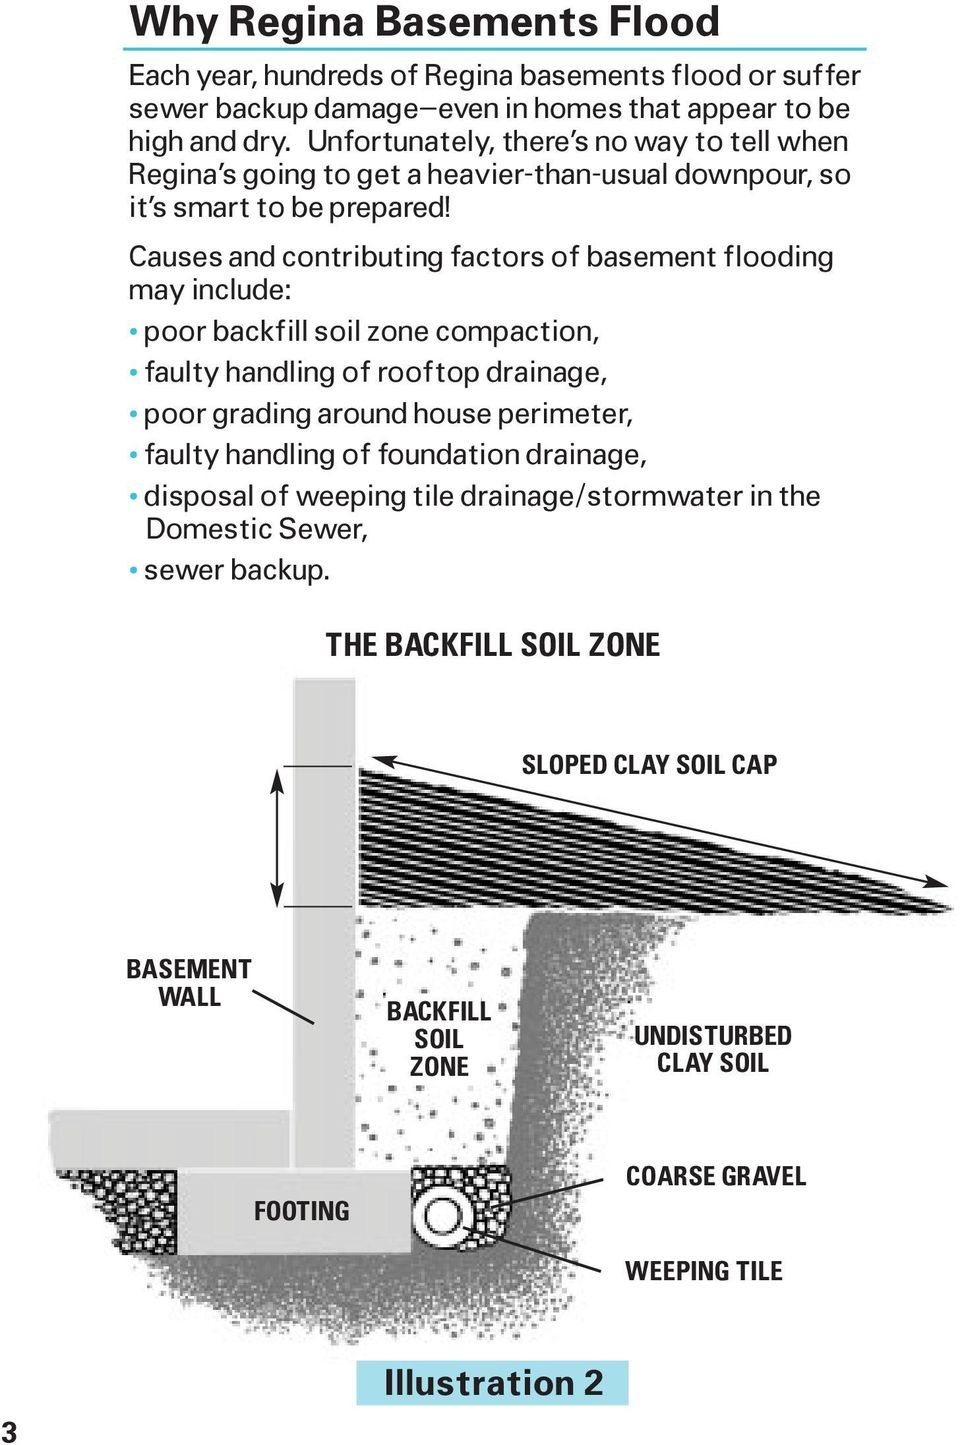 Causes and contributing factors of basement flooding may include: poor backfill soil zone compaction, faulty handling of rooftop drainage, poor grading around house perimeter, faulty